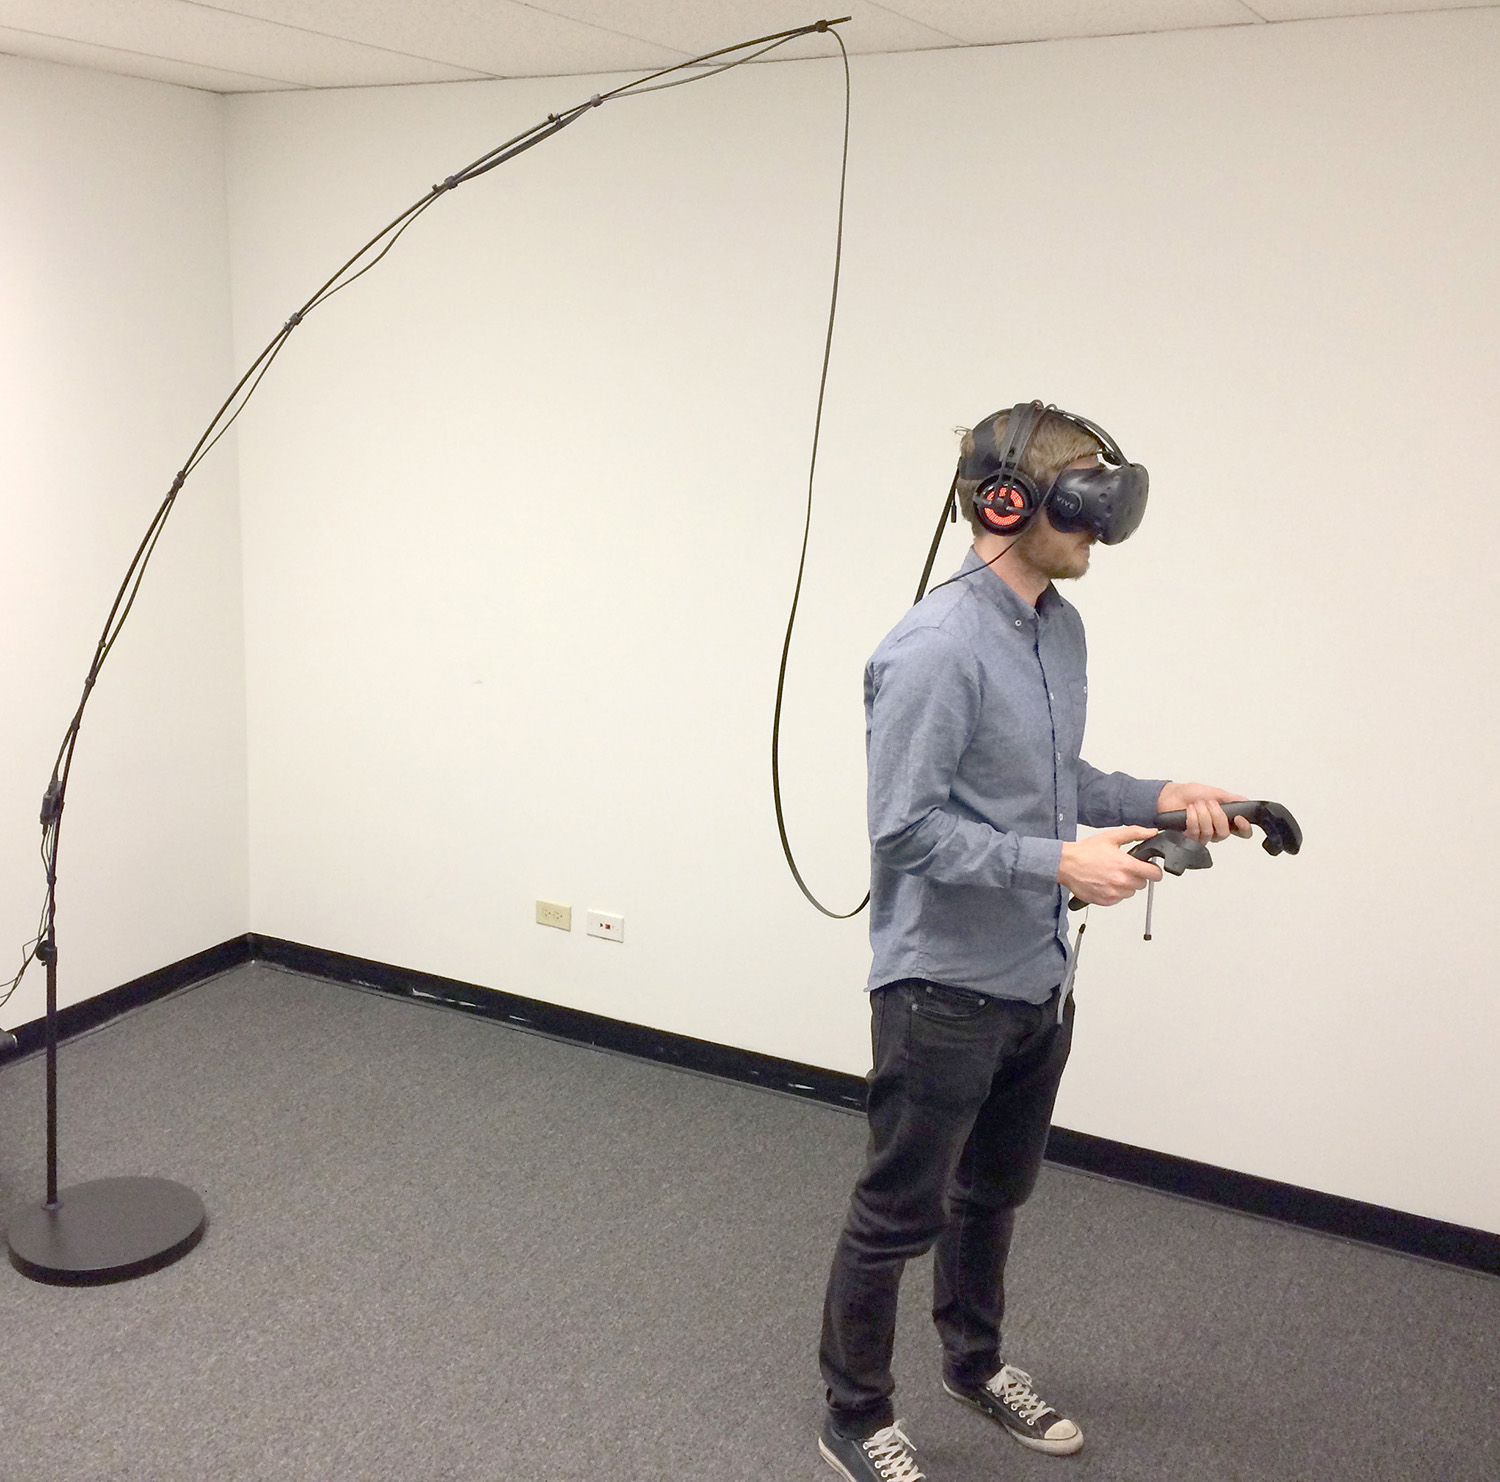 IKEA Saved Our Lives in VR